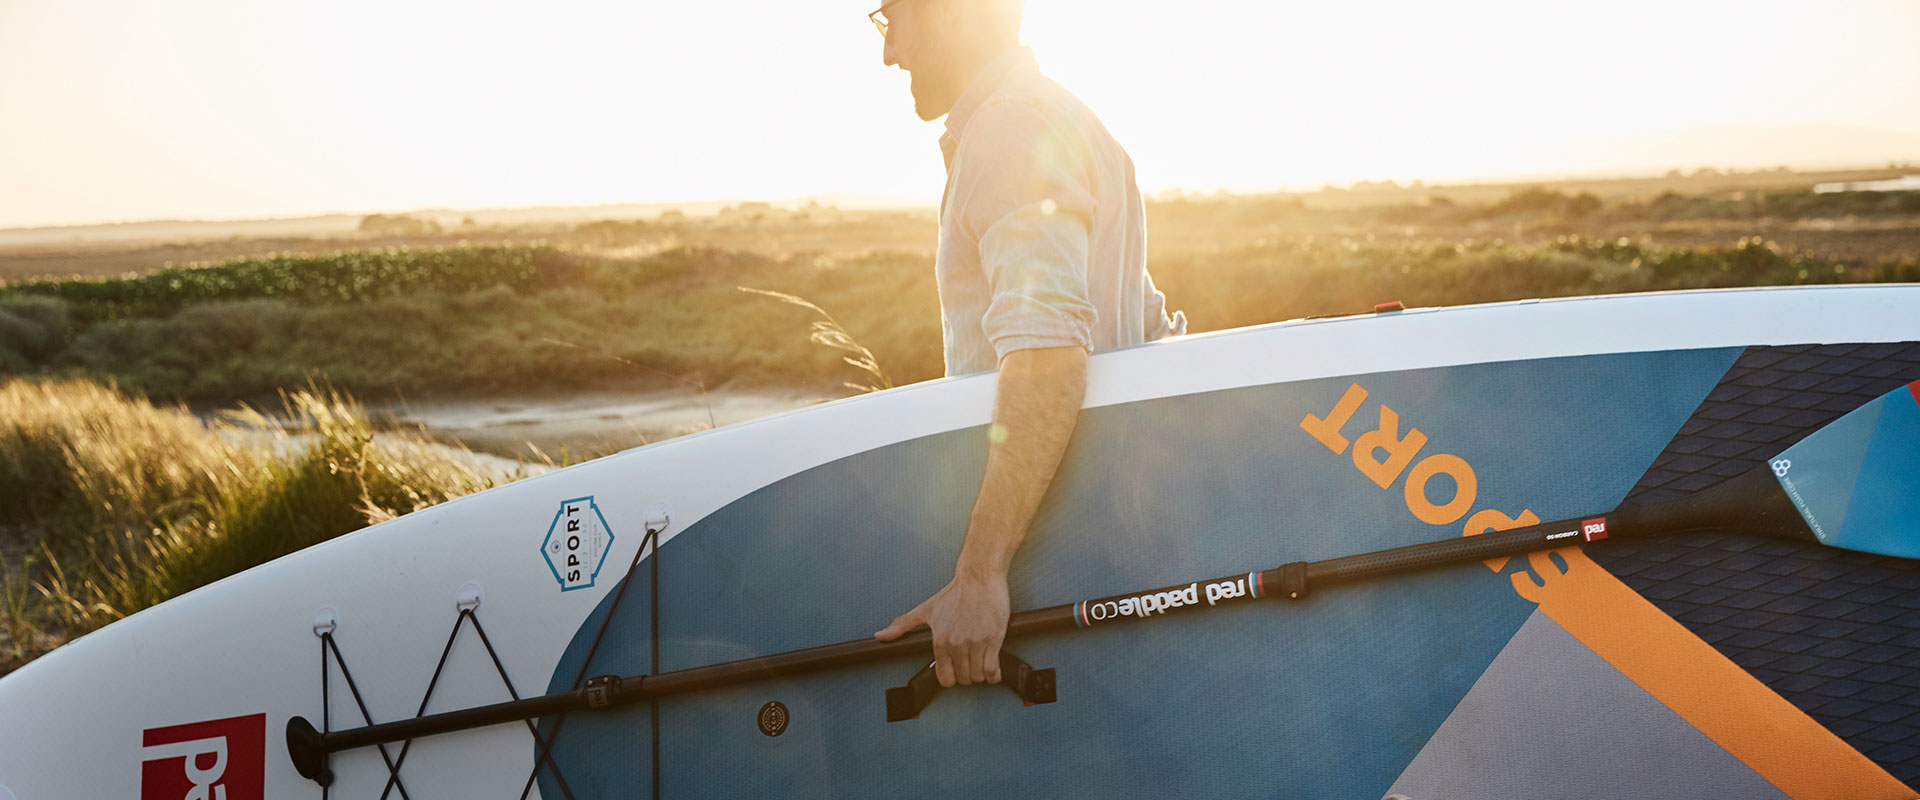 HOW TO BUY A PADDLE BOARD